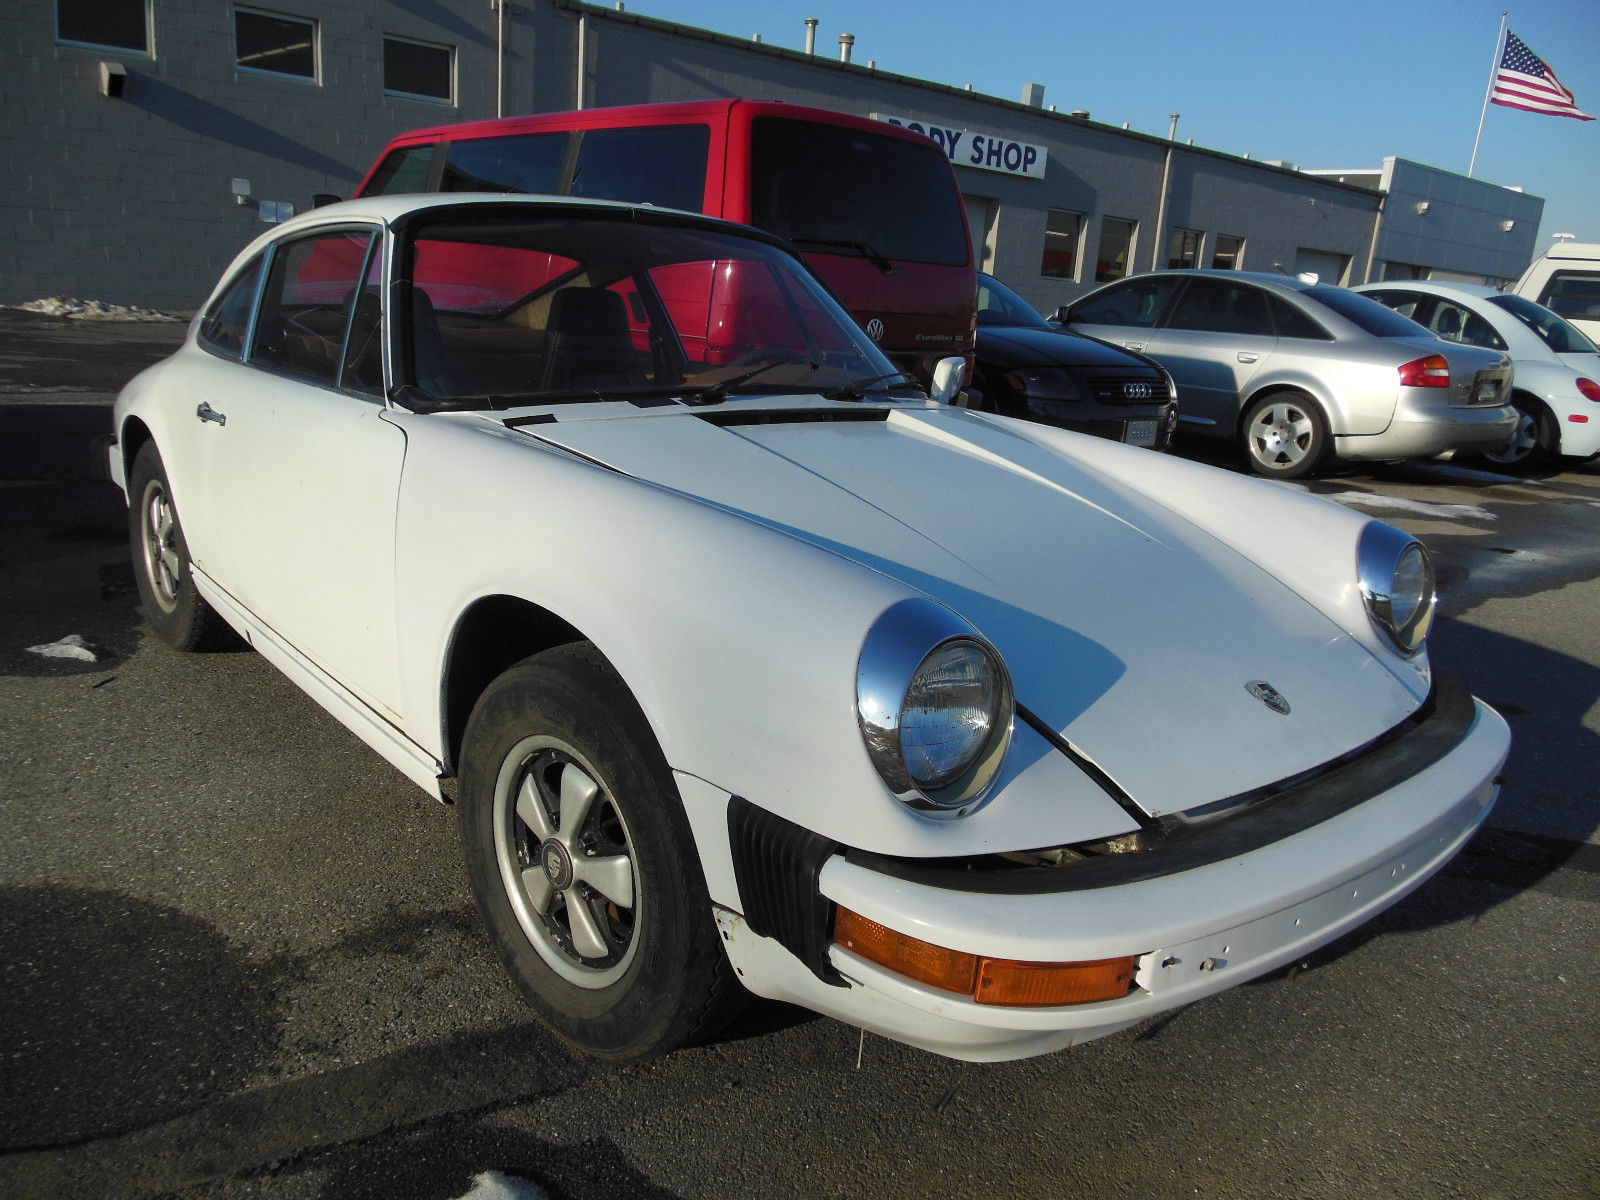 1976 porsche 912e grand prix white project car barn find classic porsche 912 1976 for sale. Black Bedroom Furniture Sets. Home Design Ideas